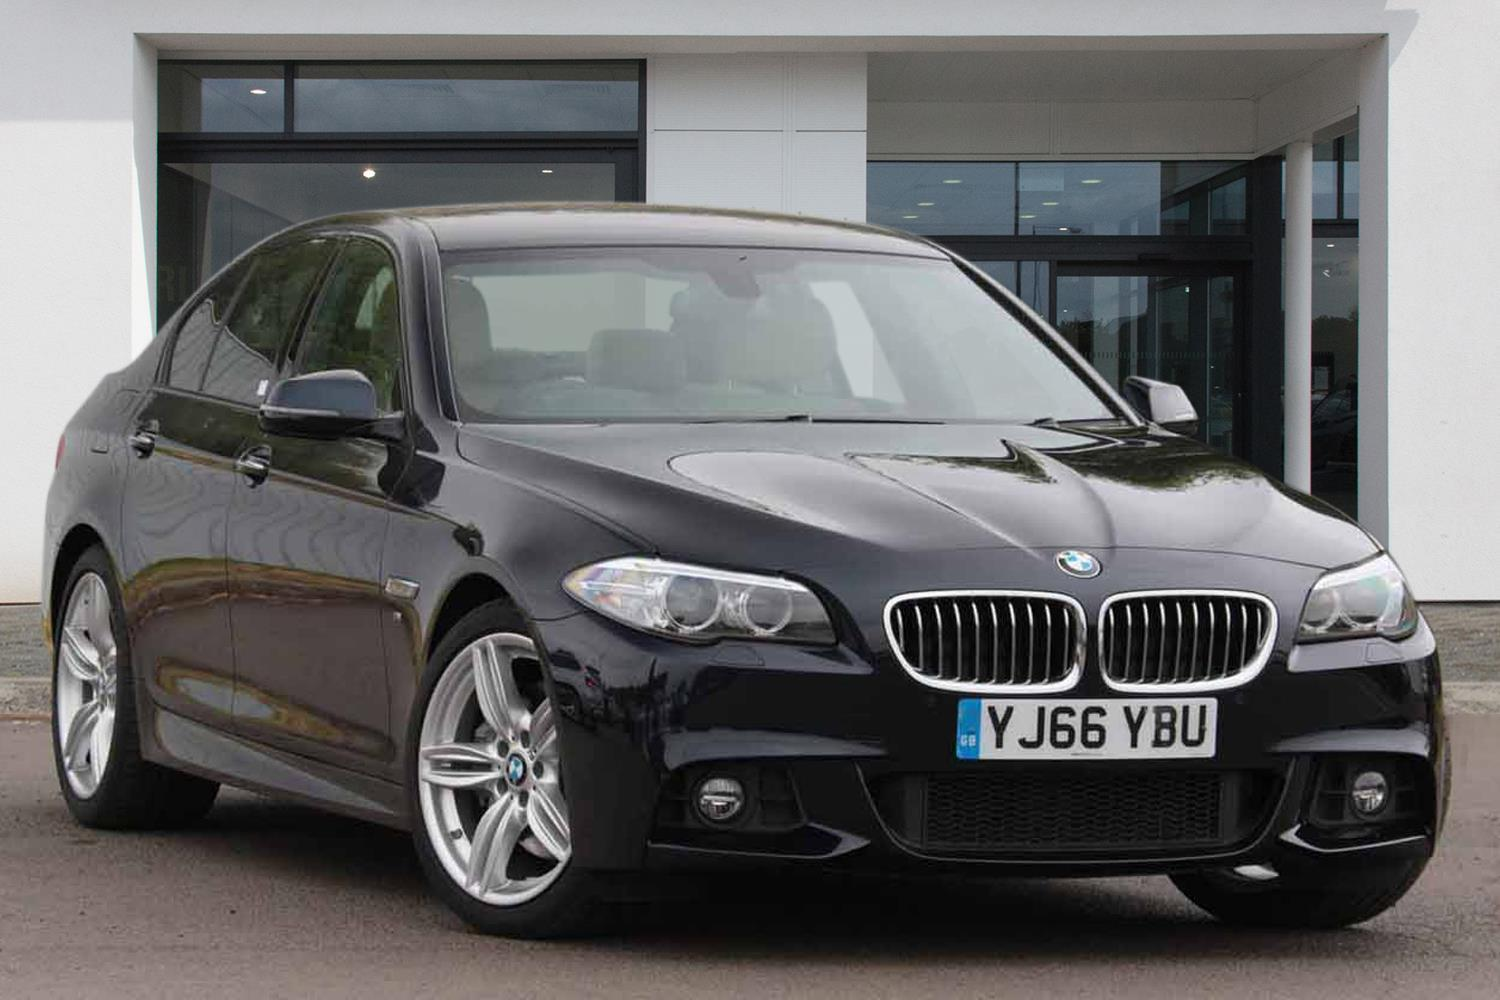 BMW 5 Series Saloon YJ66YBU - Image 4